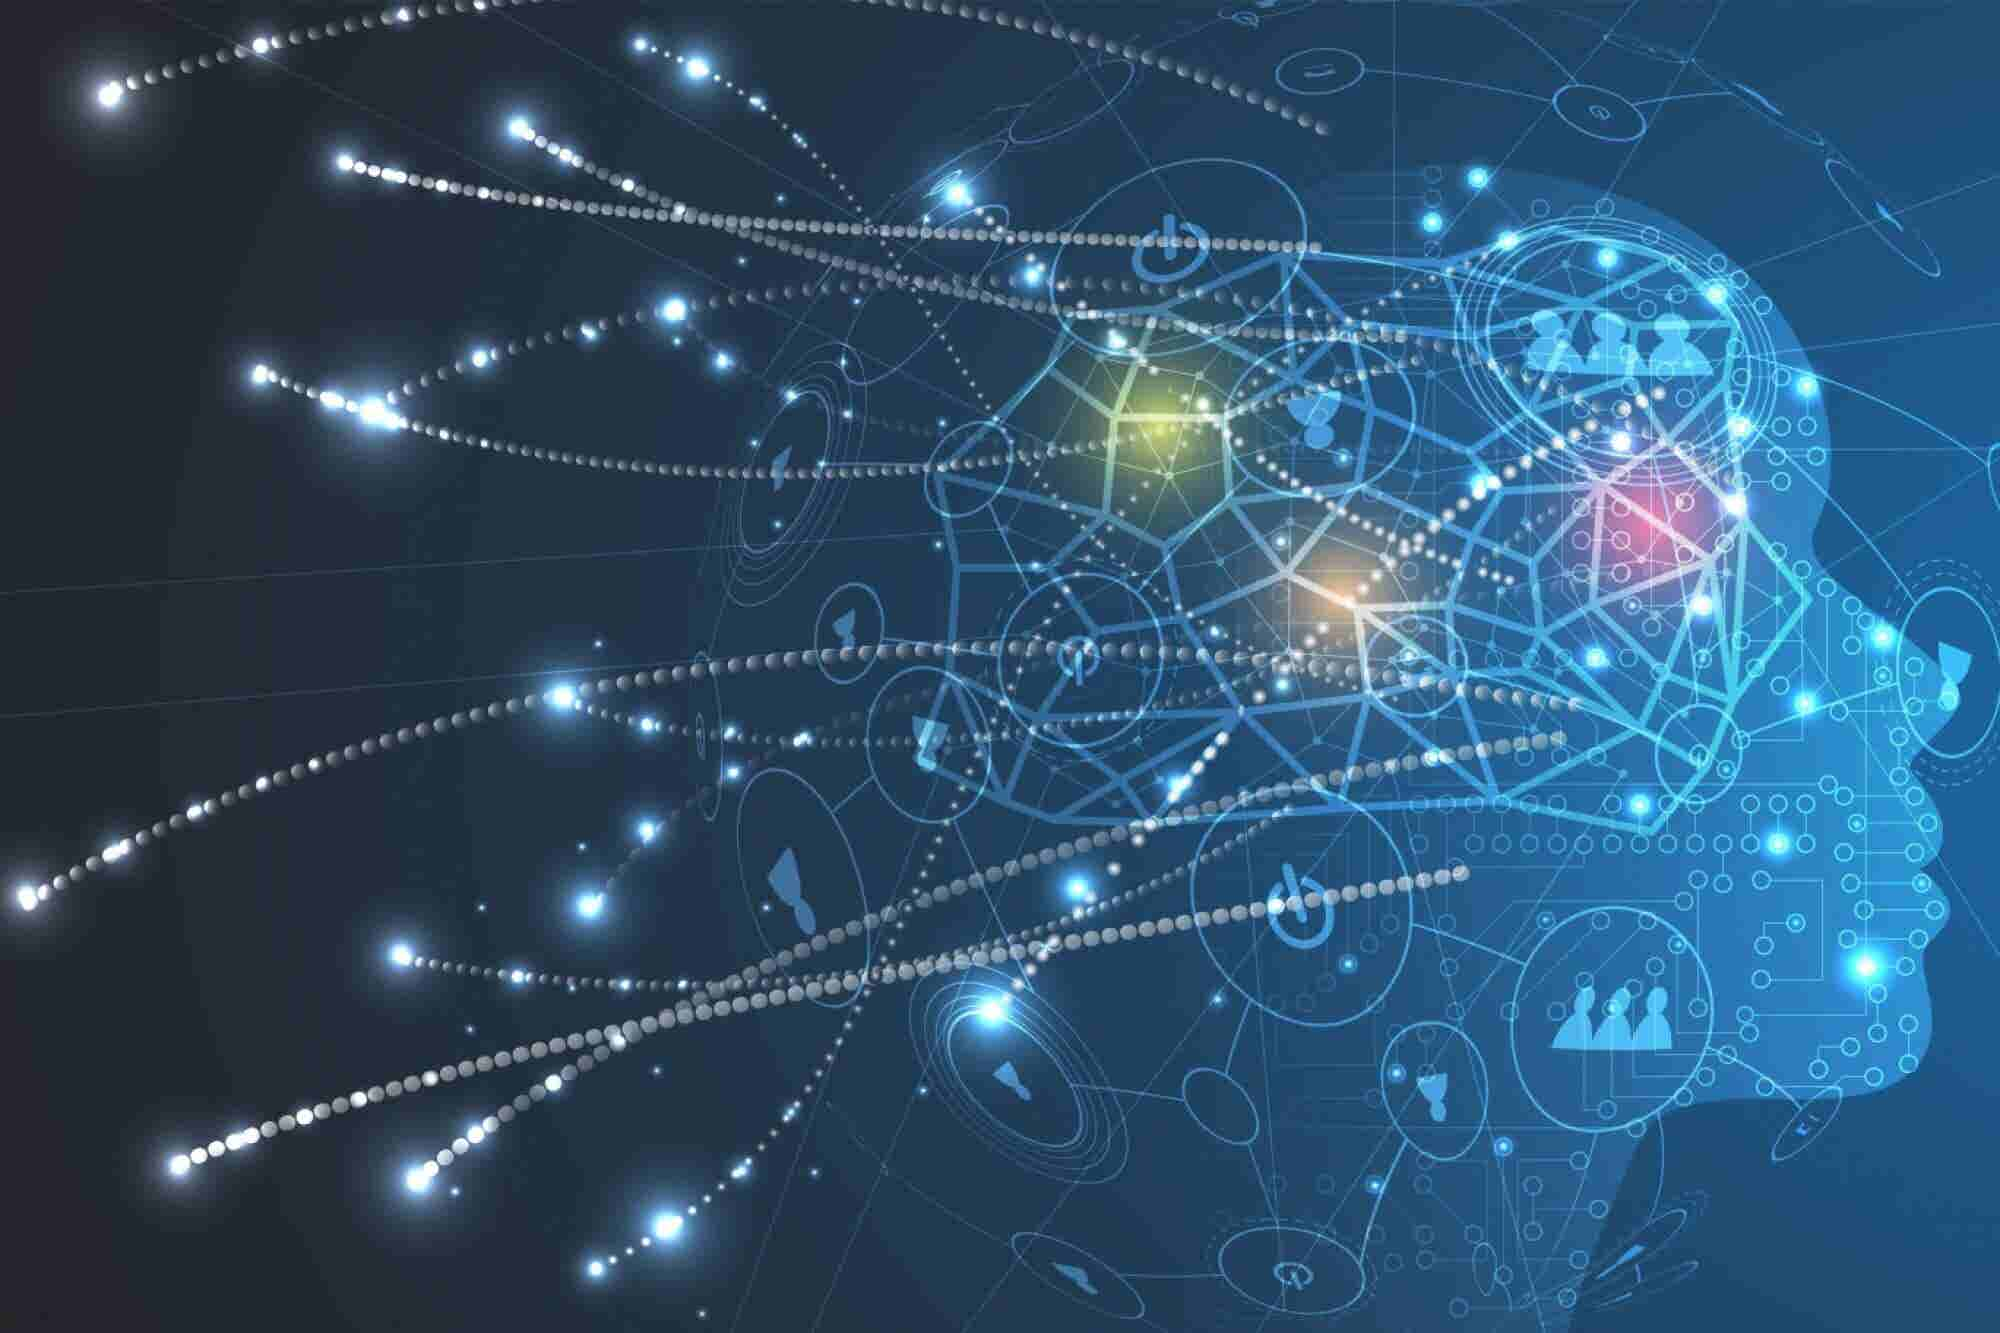 Embracing Inevitability: Projection and Impact of Conversational AI in 2019